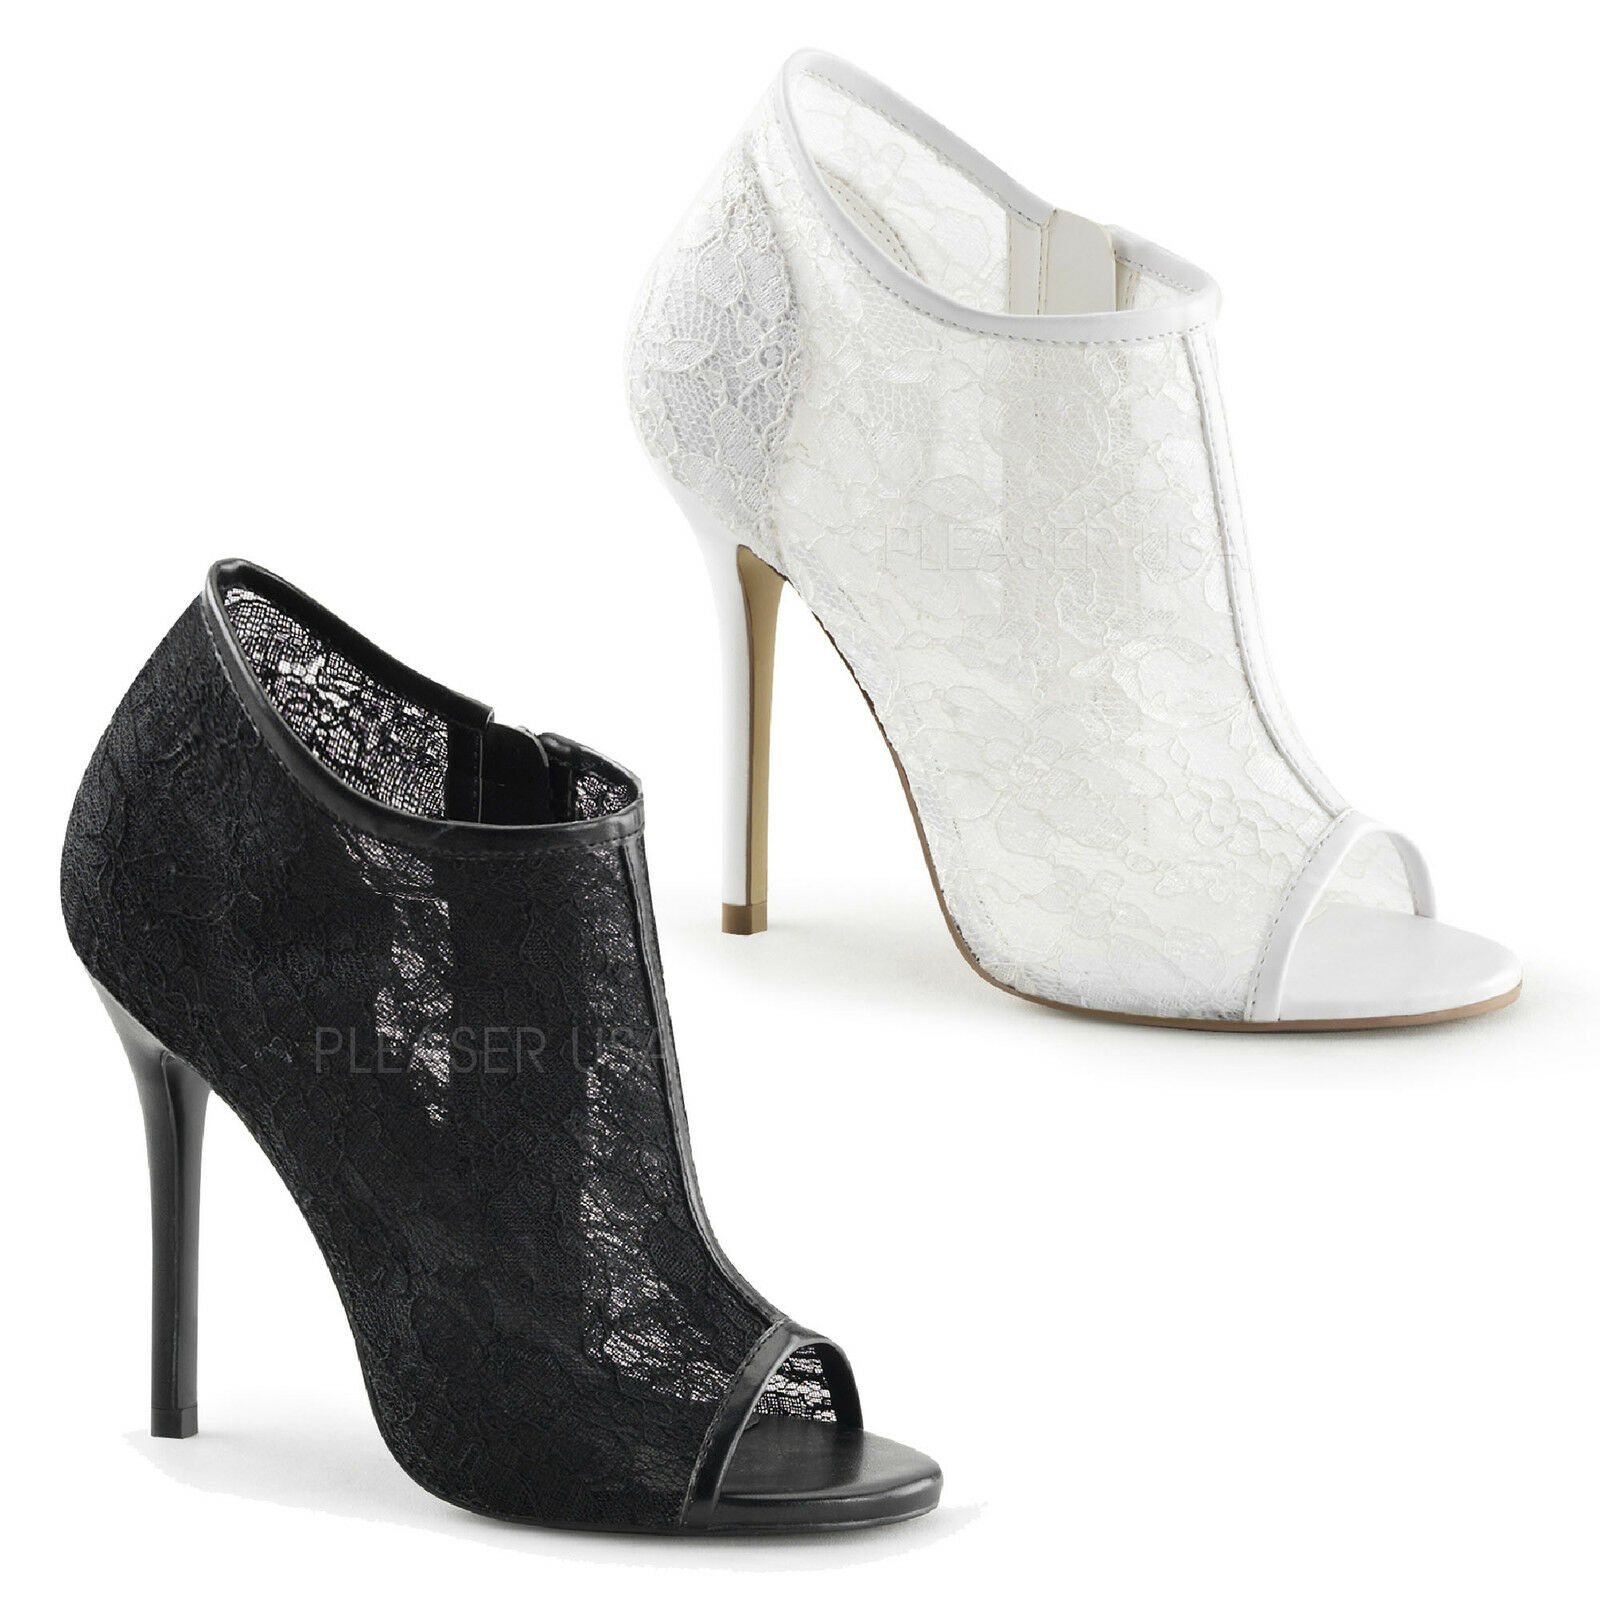 FABULICIOUS By Pleaser - Amuse-56 Open Toe Bootie With With With Lace Overlay Patent Trim 3a8c1e